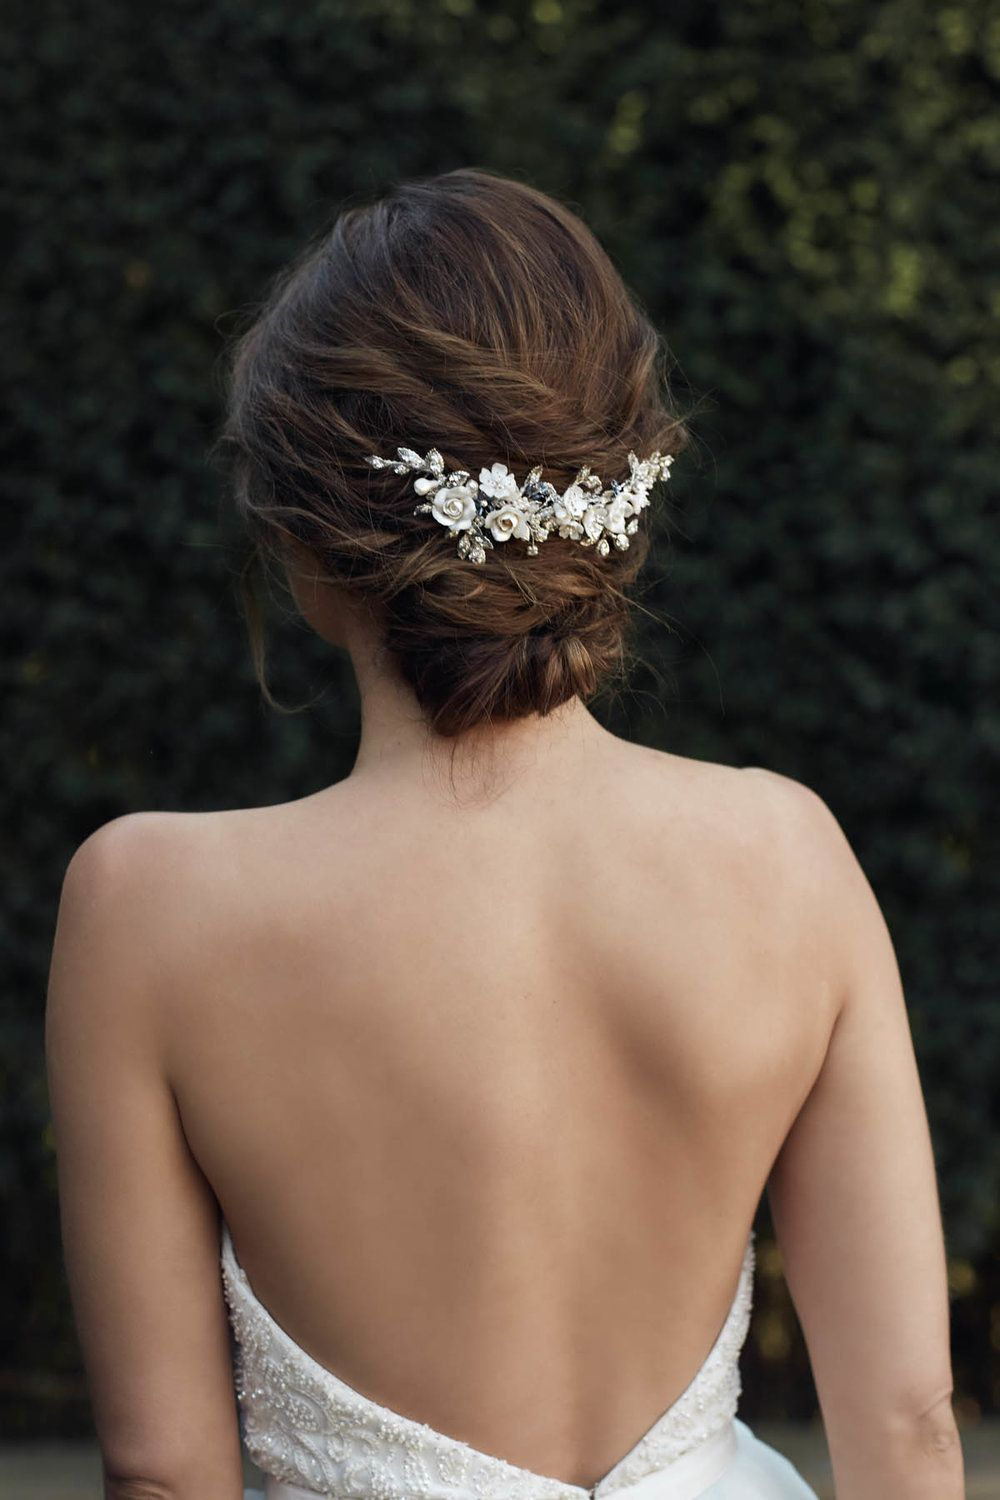 tania maras bridal accessories collection | hair style